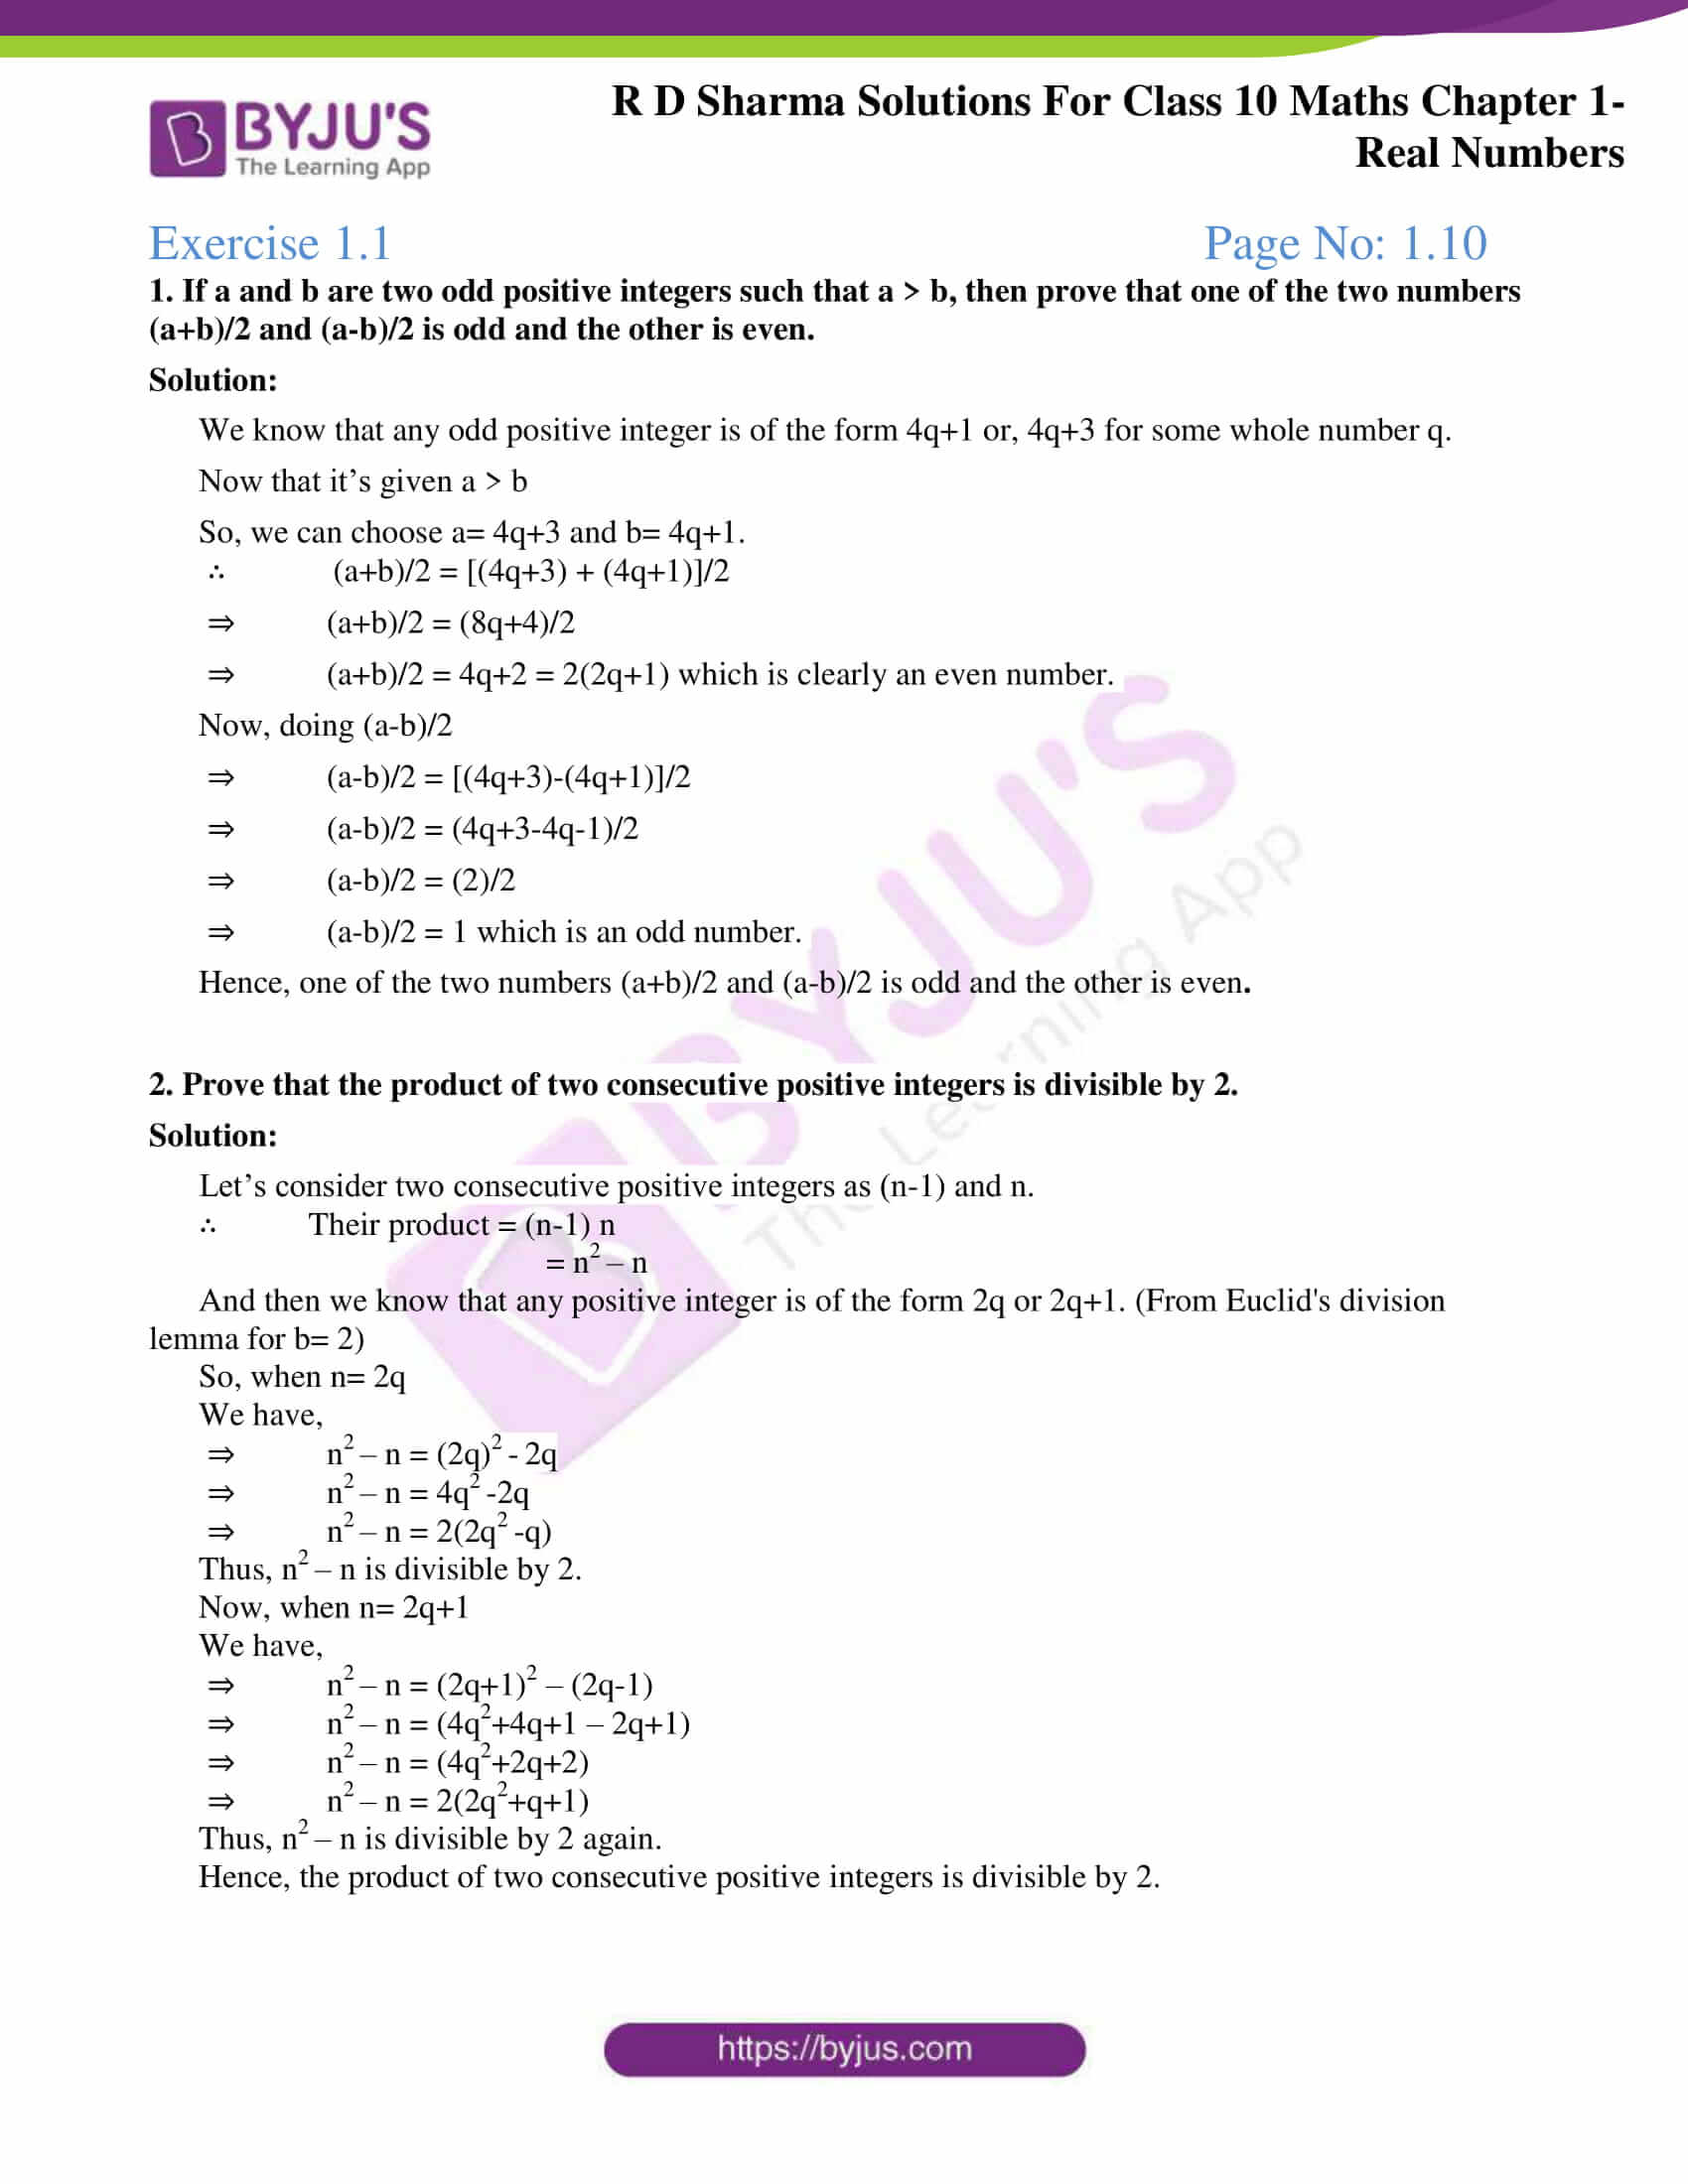 rd sharma class 10 chapter 1 real numbers solutions exercise 1 01